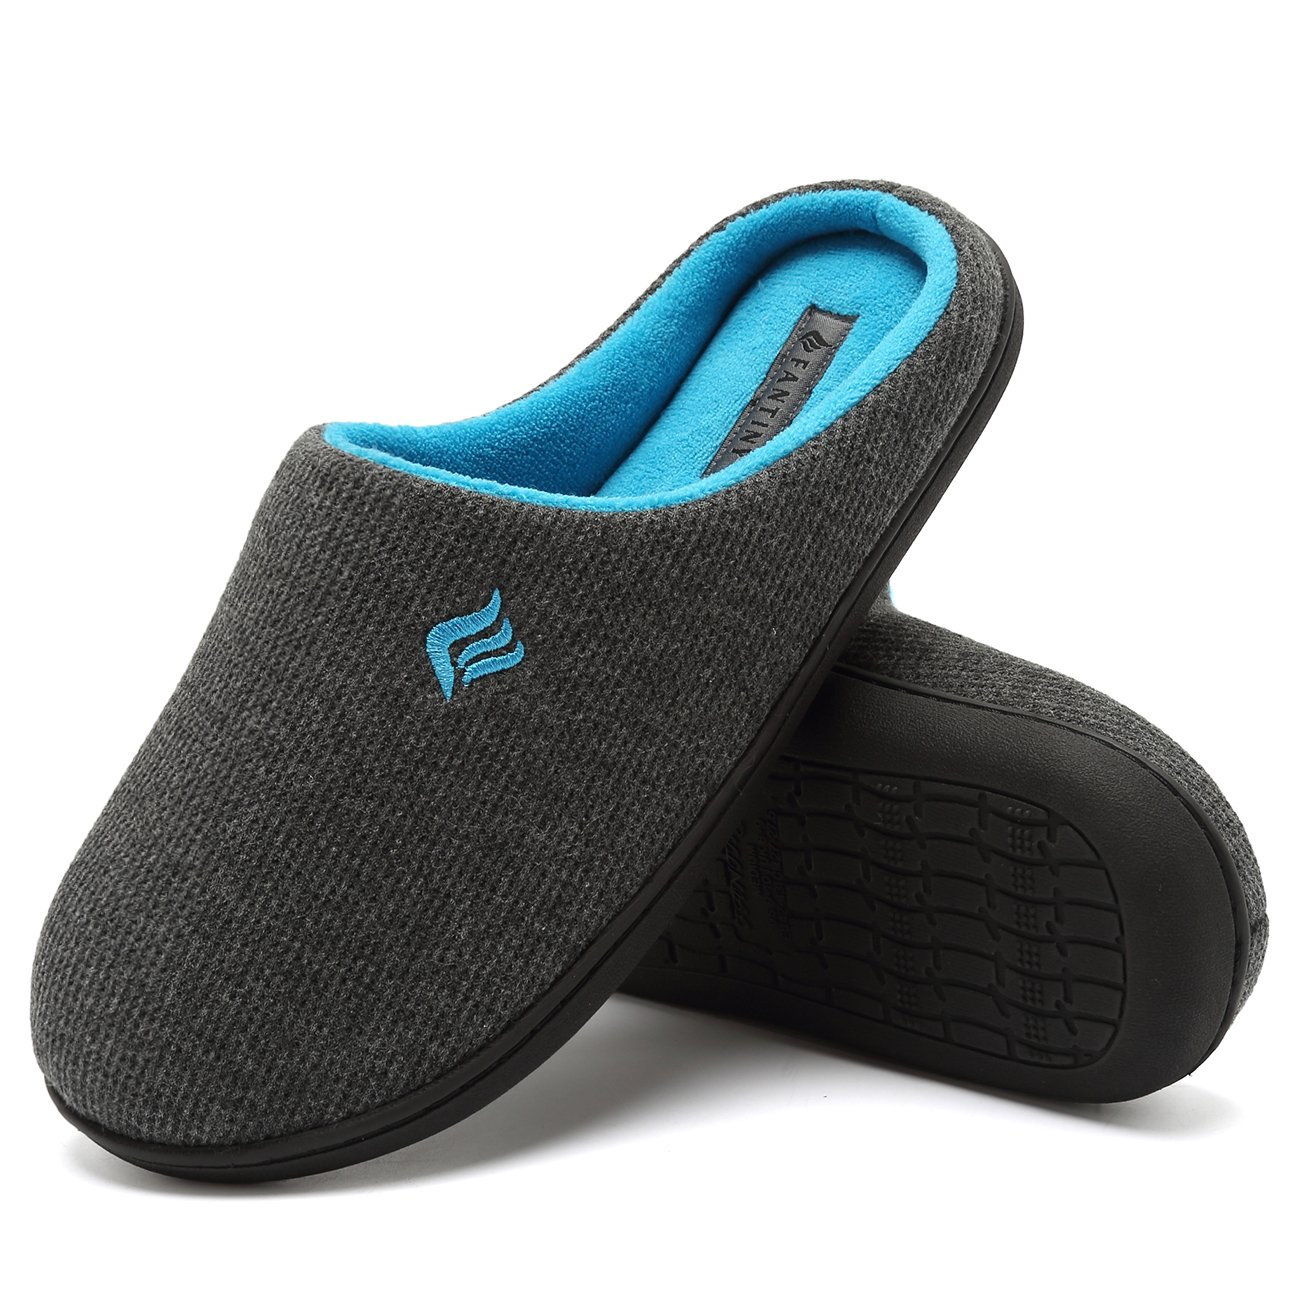 CIOR Fantiny Men's Memory Foam Slippers Two-Tone Slip-on Clog Scuff House Shoes Indoor & Outdoor-U118WMT020-darkgray-42.43